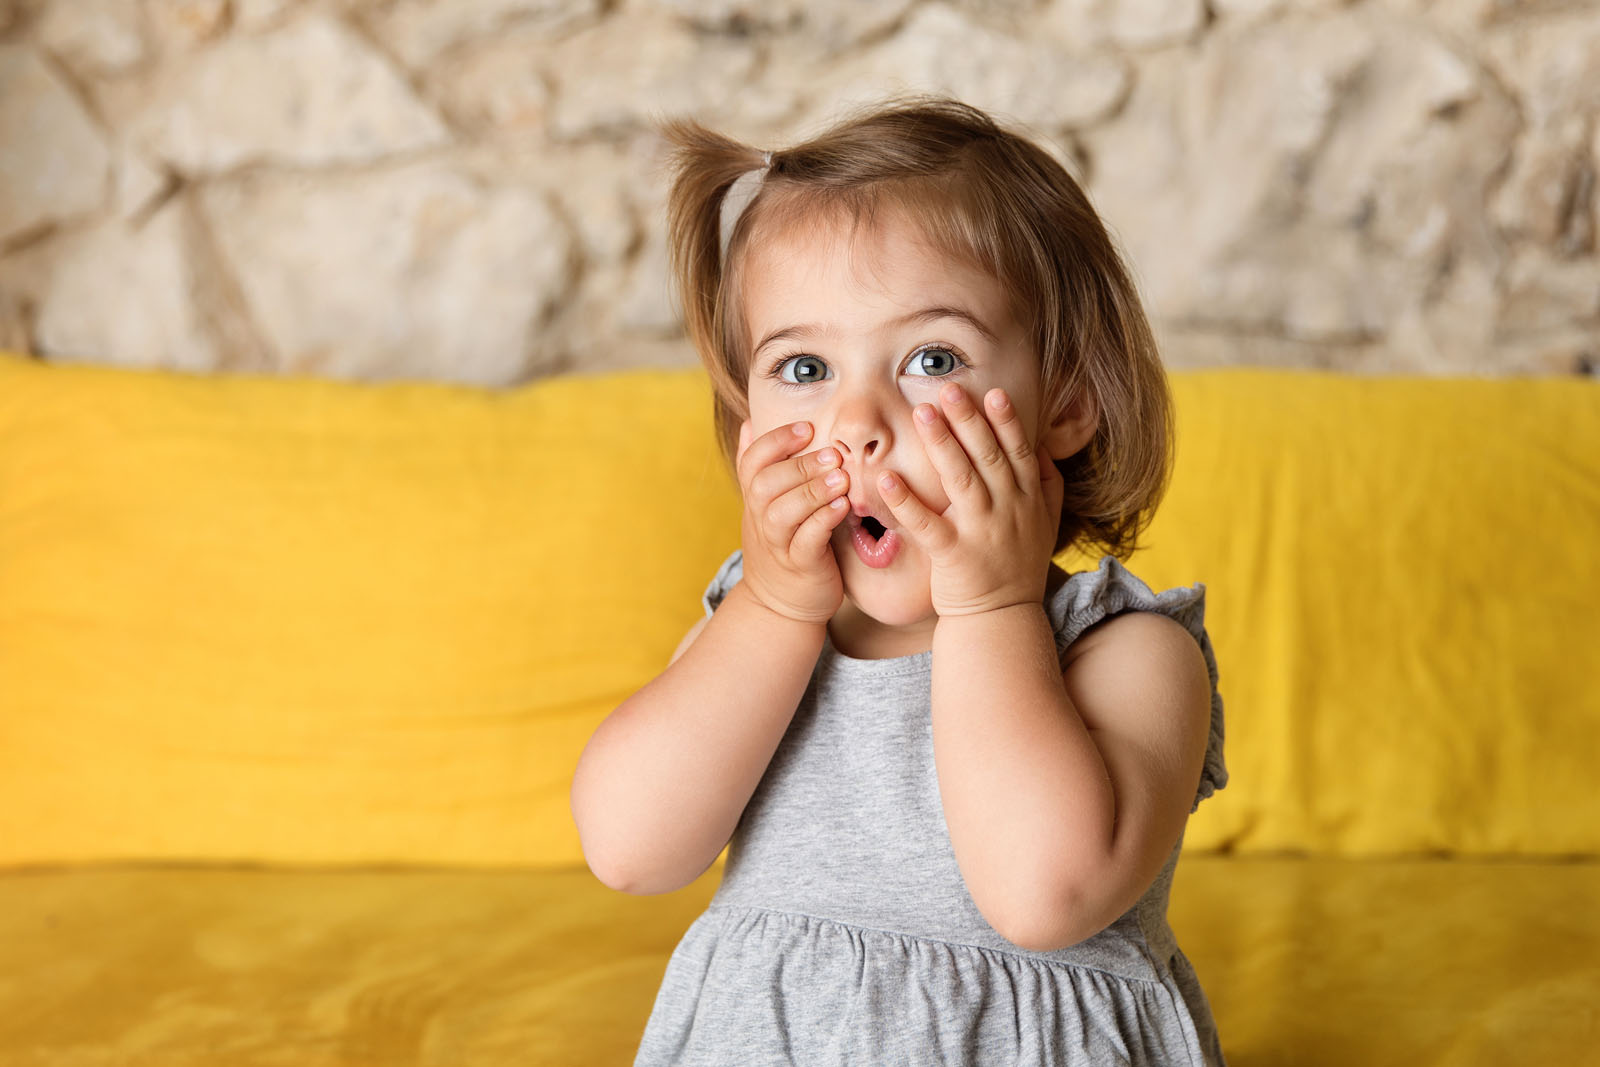 Image04 small girl giggling and covering mouth lisa tichane